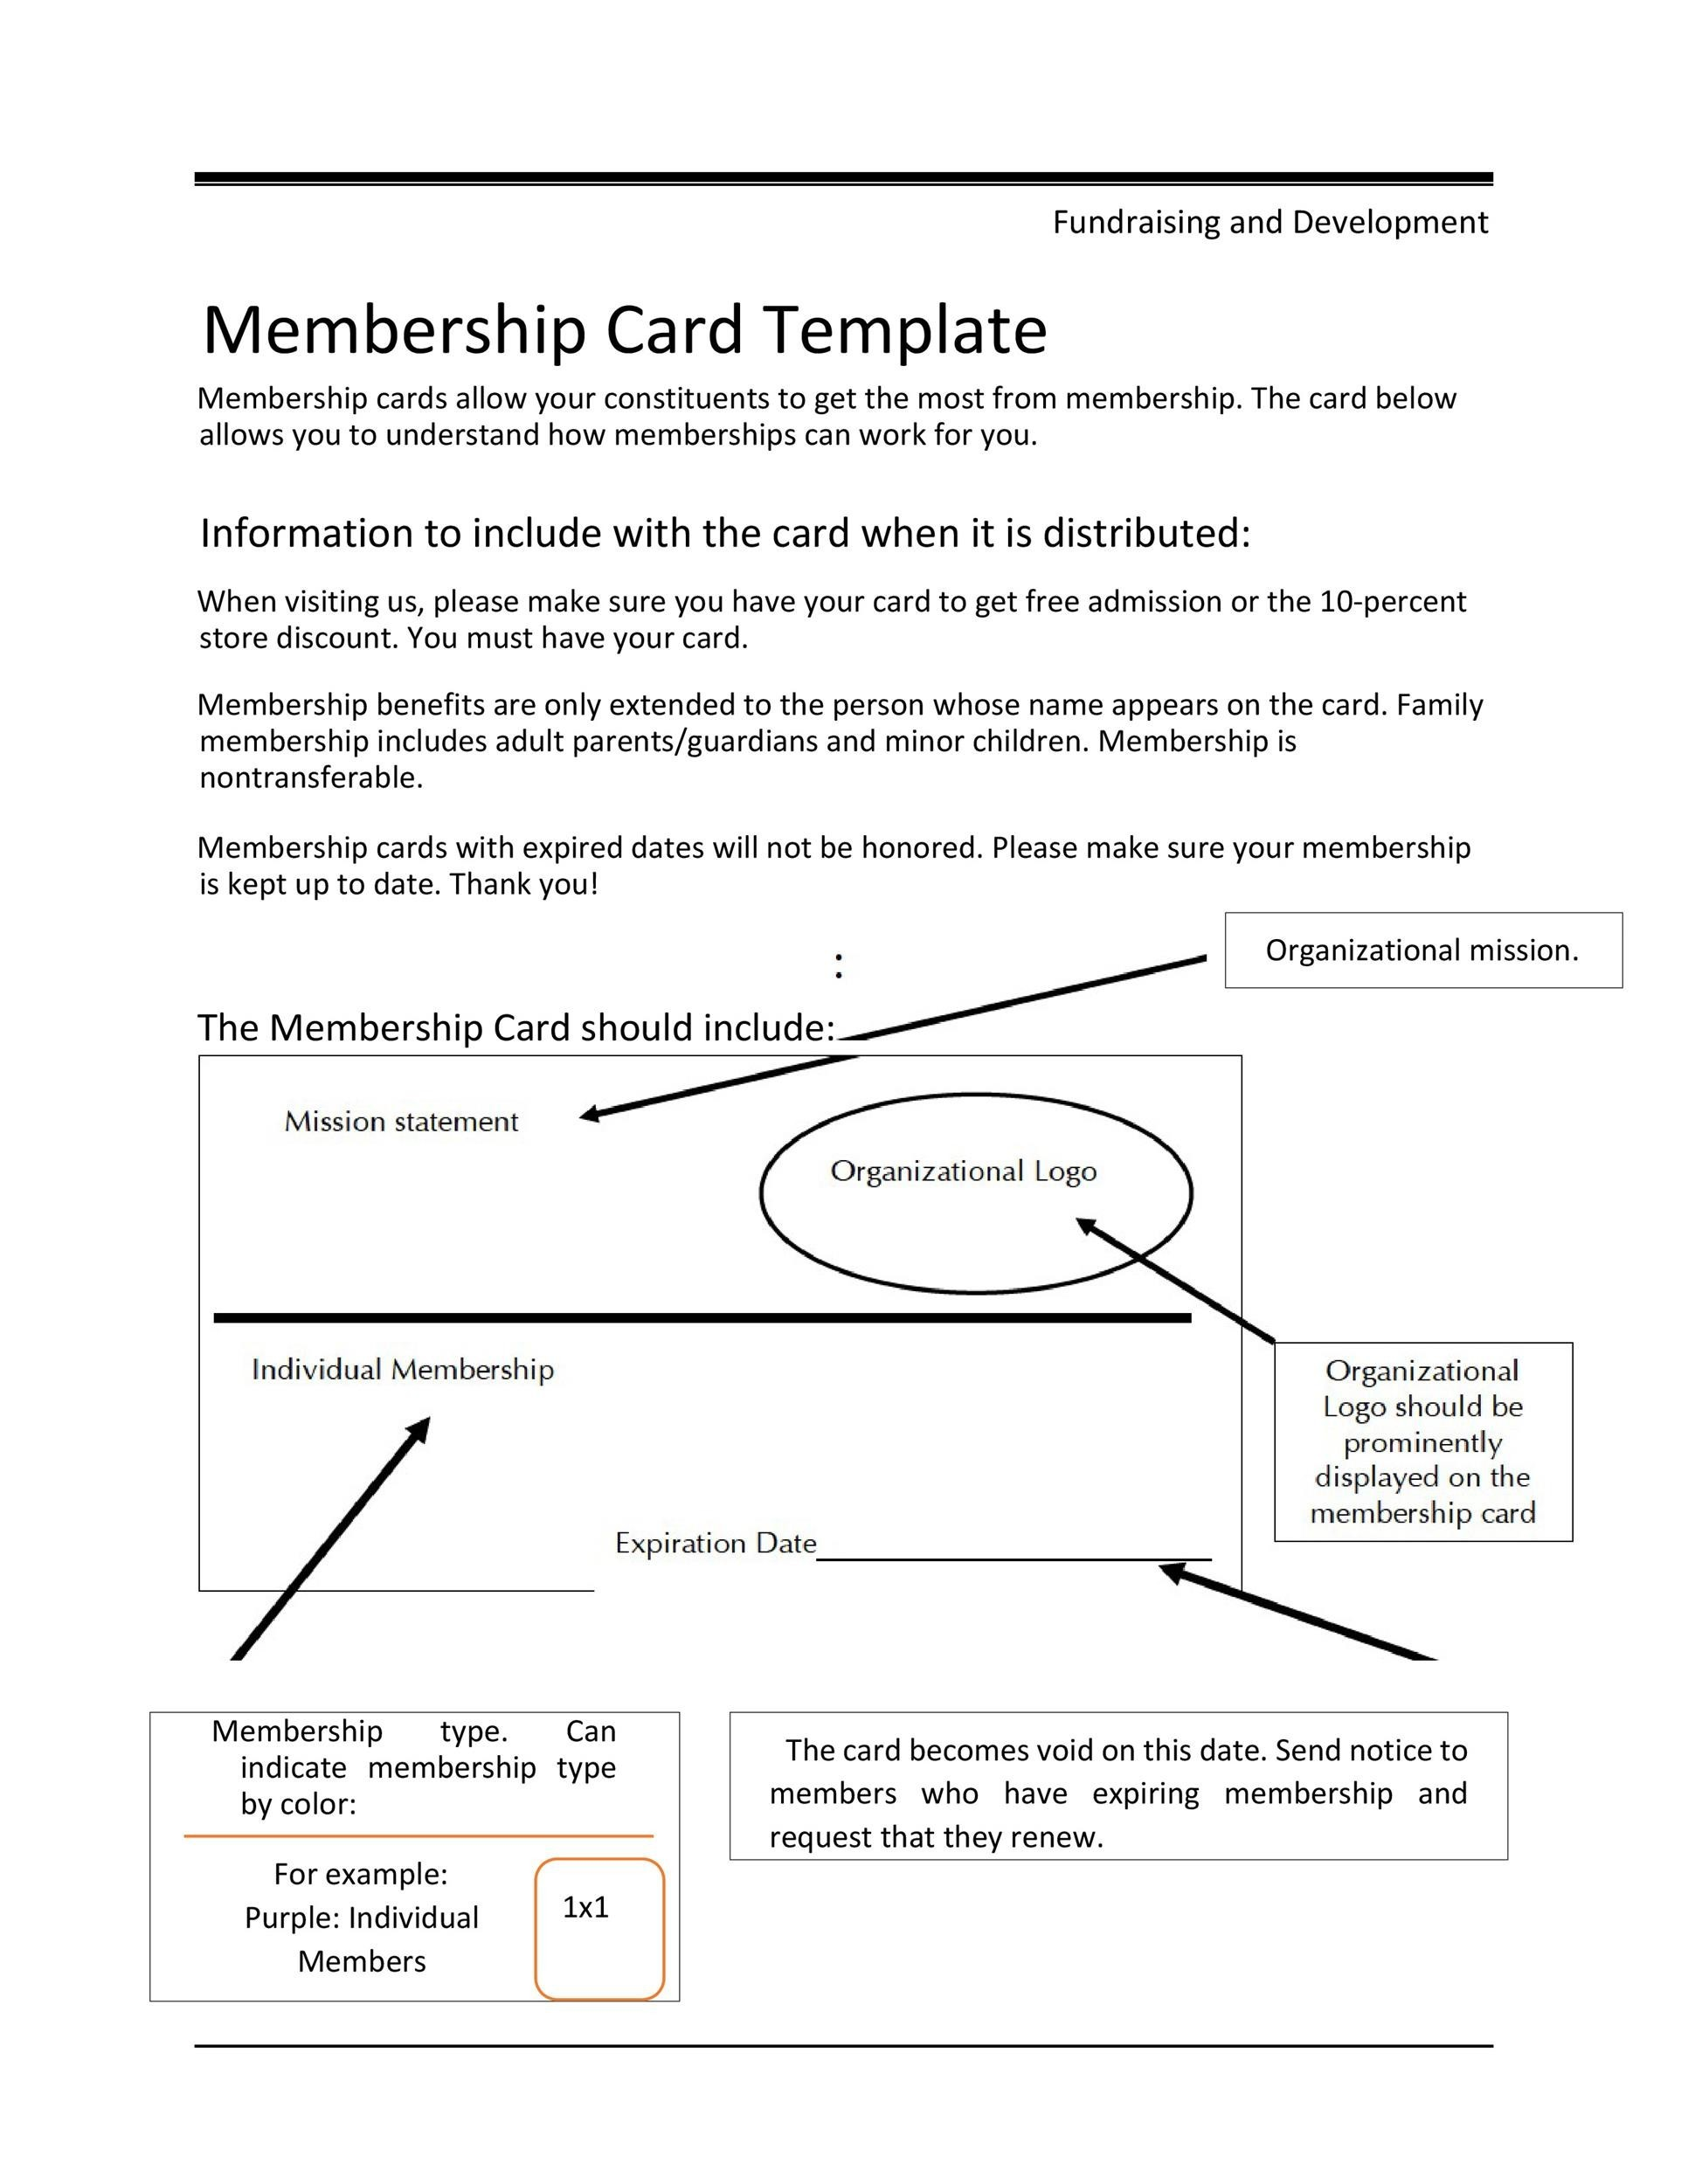 25 cool membership card templates  u0026 designs  ms word   u1405